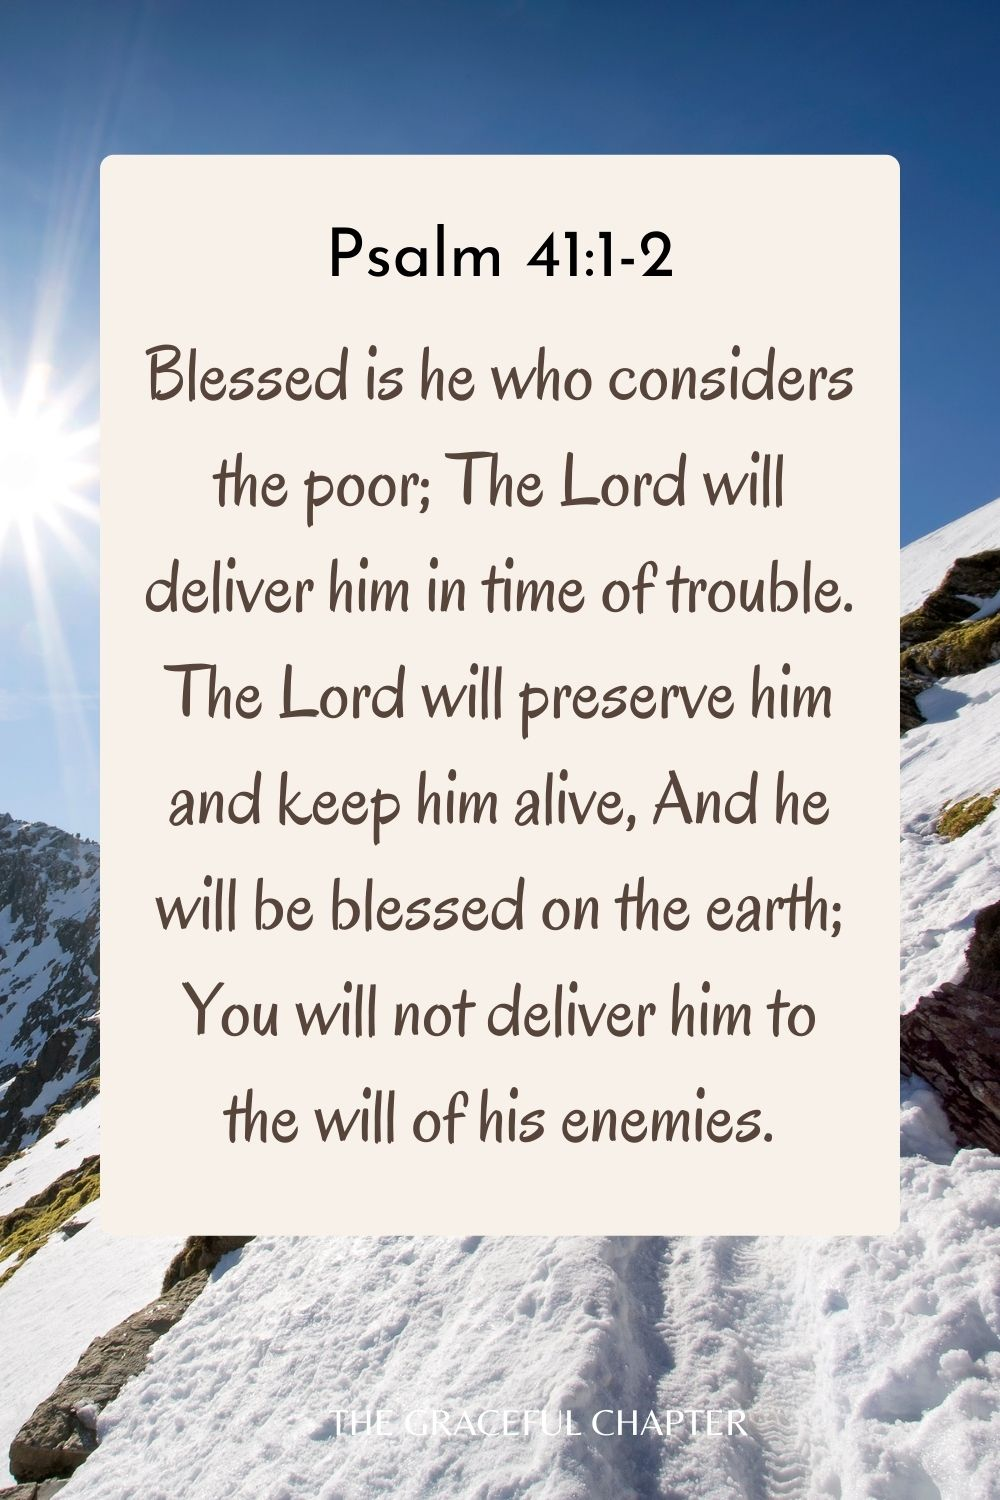 Blessed is he who considers the poor; The Lord will deliver him in time of trouble. The Lord will preserve him and keep him alive, And he will be blessed on the earth; You will not deliver him to the will of his enemies. Psalm 41:1-2